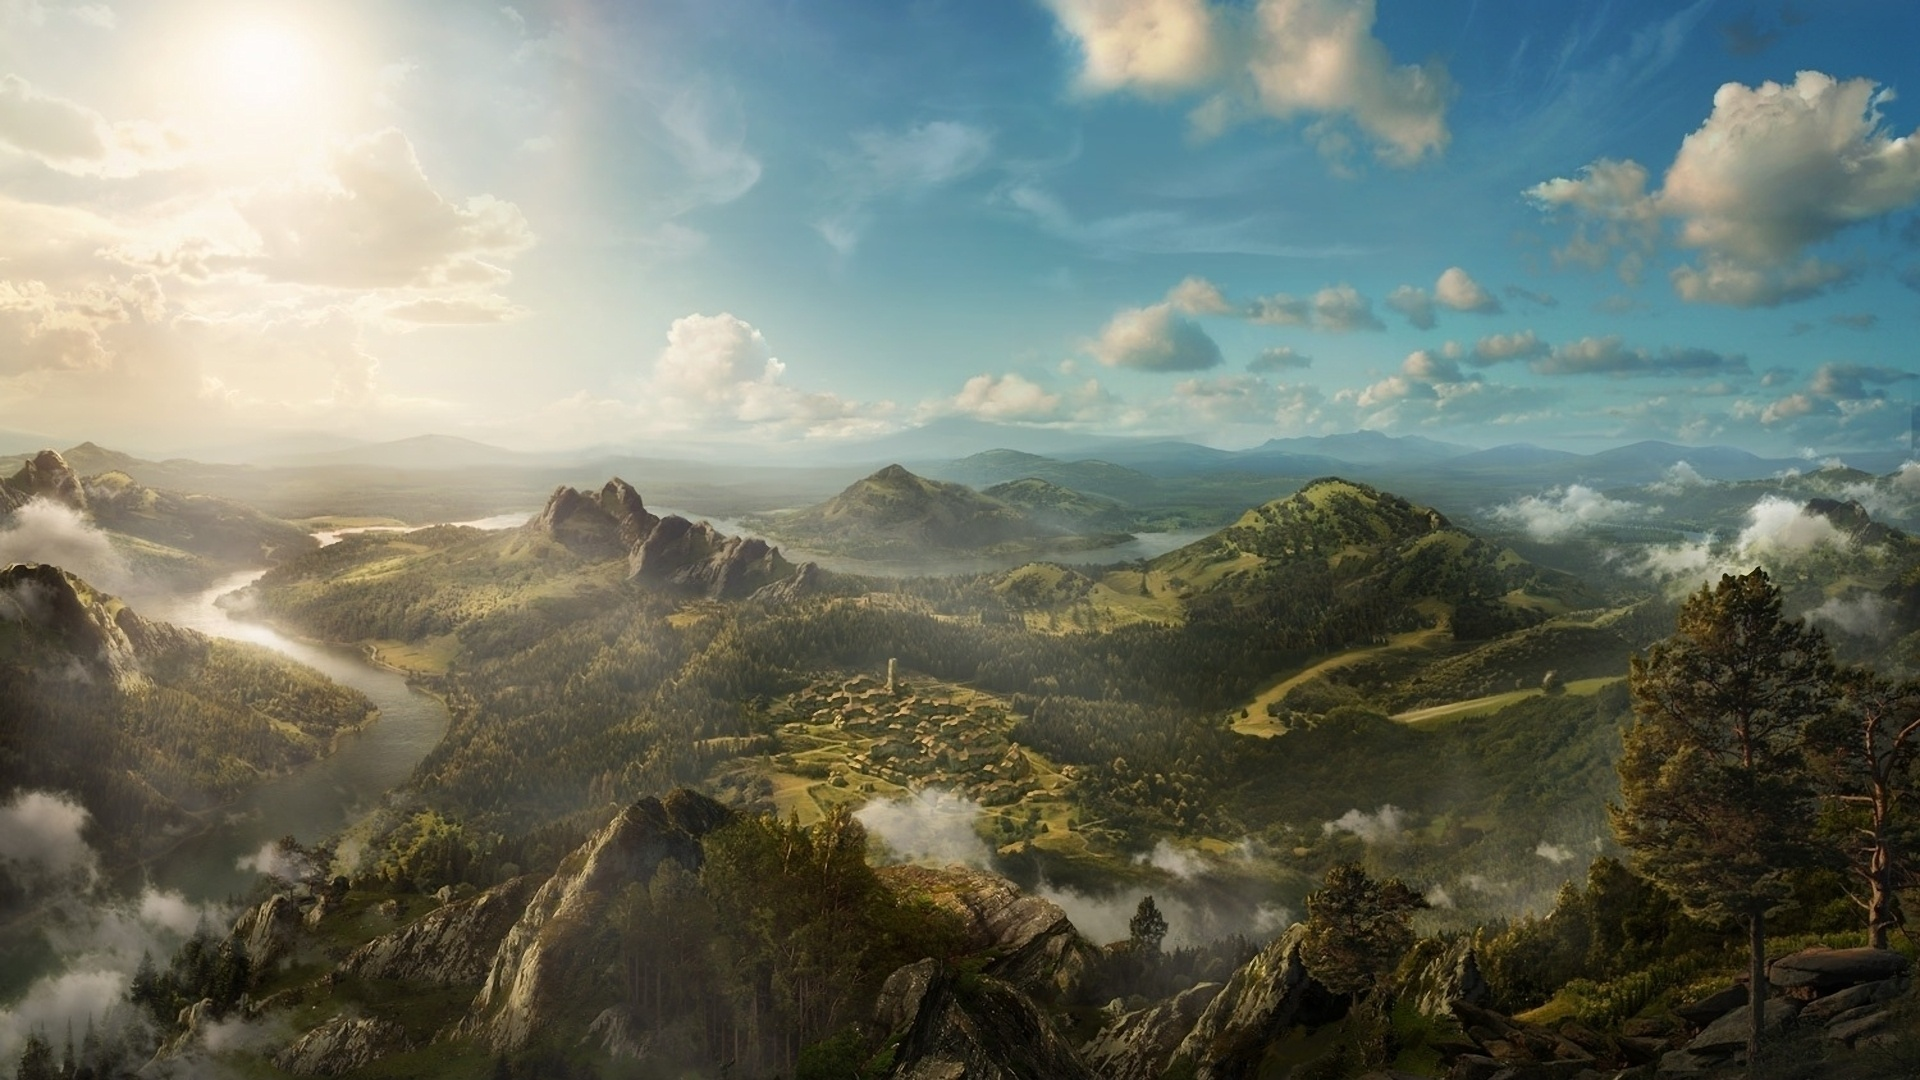 Fantasy-Landscape-Wallpaper-Free-HD.jpg